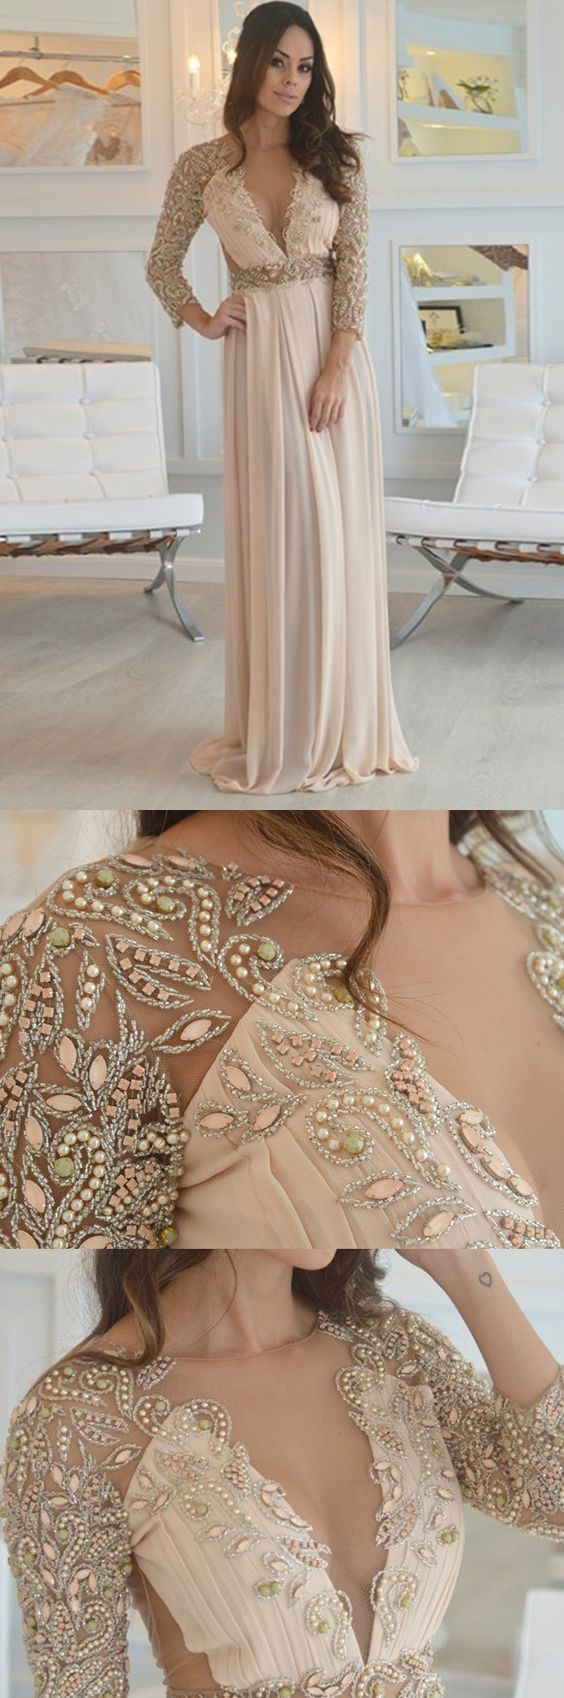 Aline round neck open back champagne chiffon prom dress with